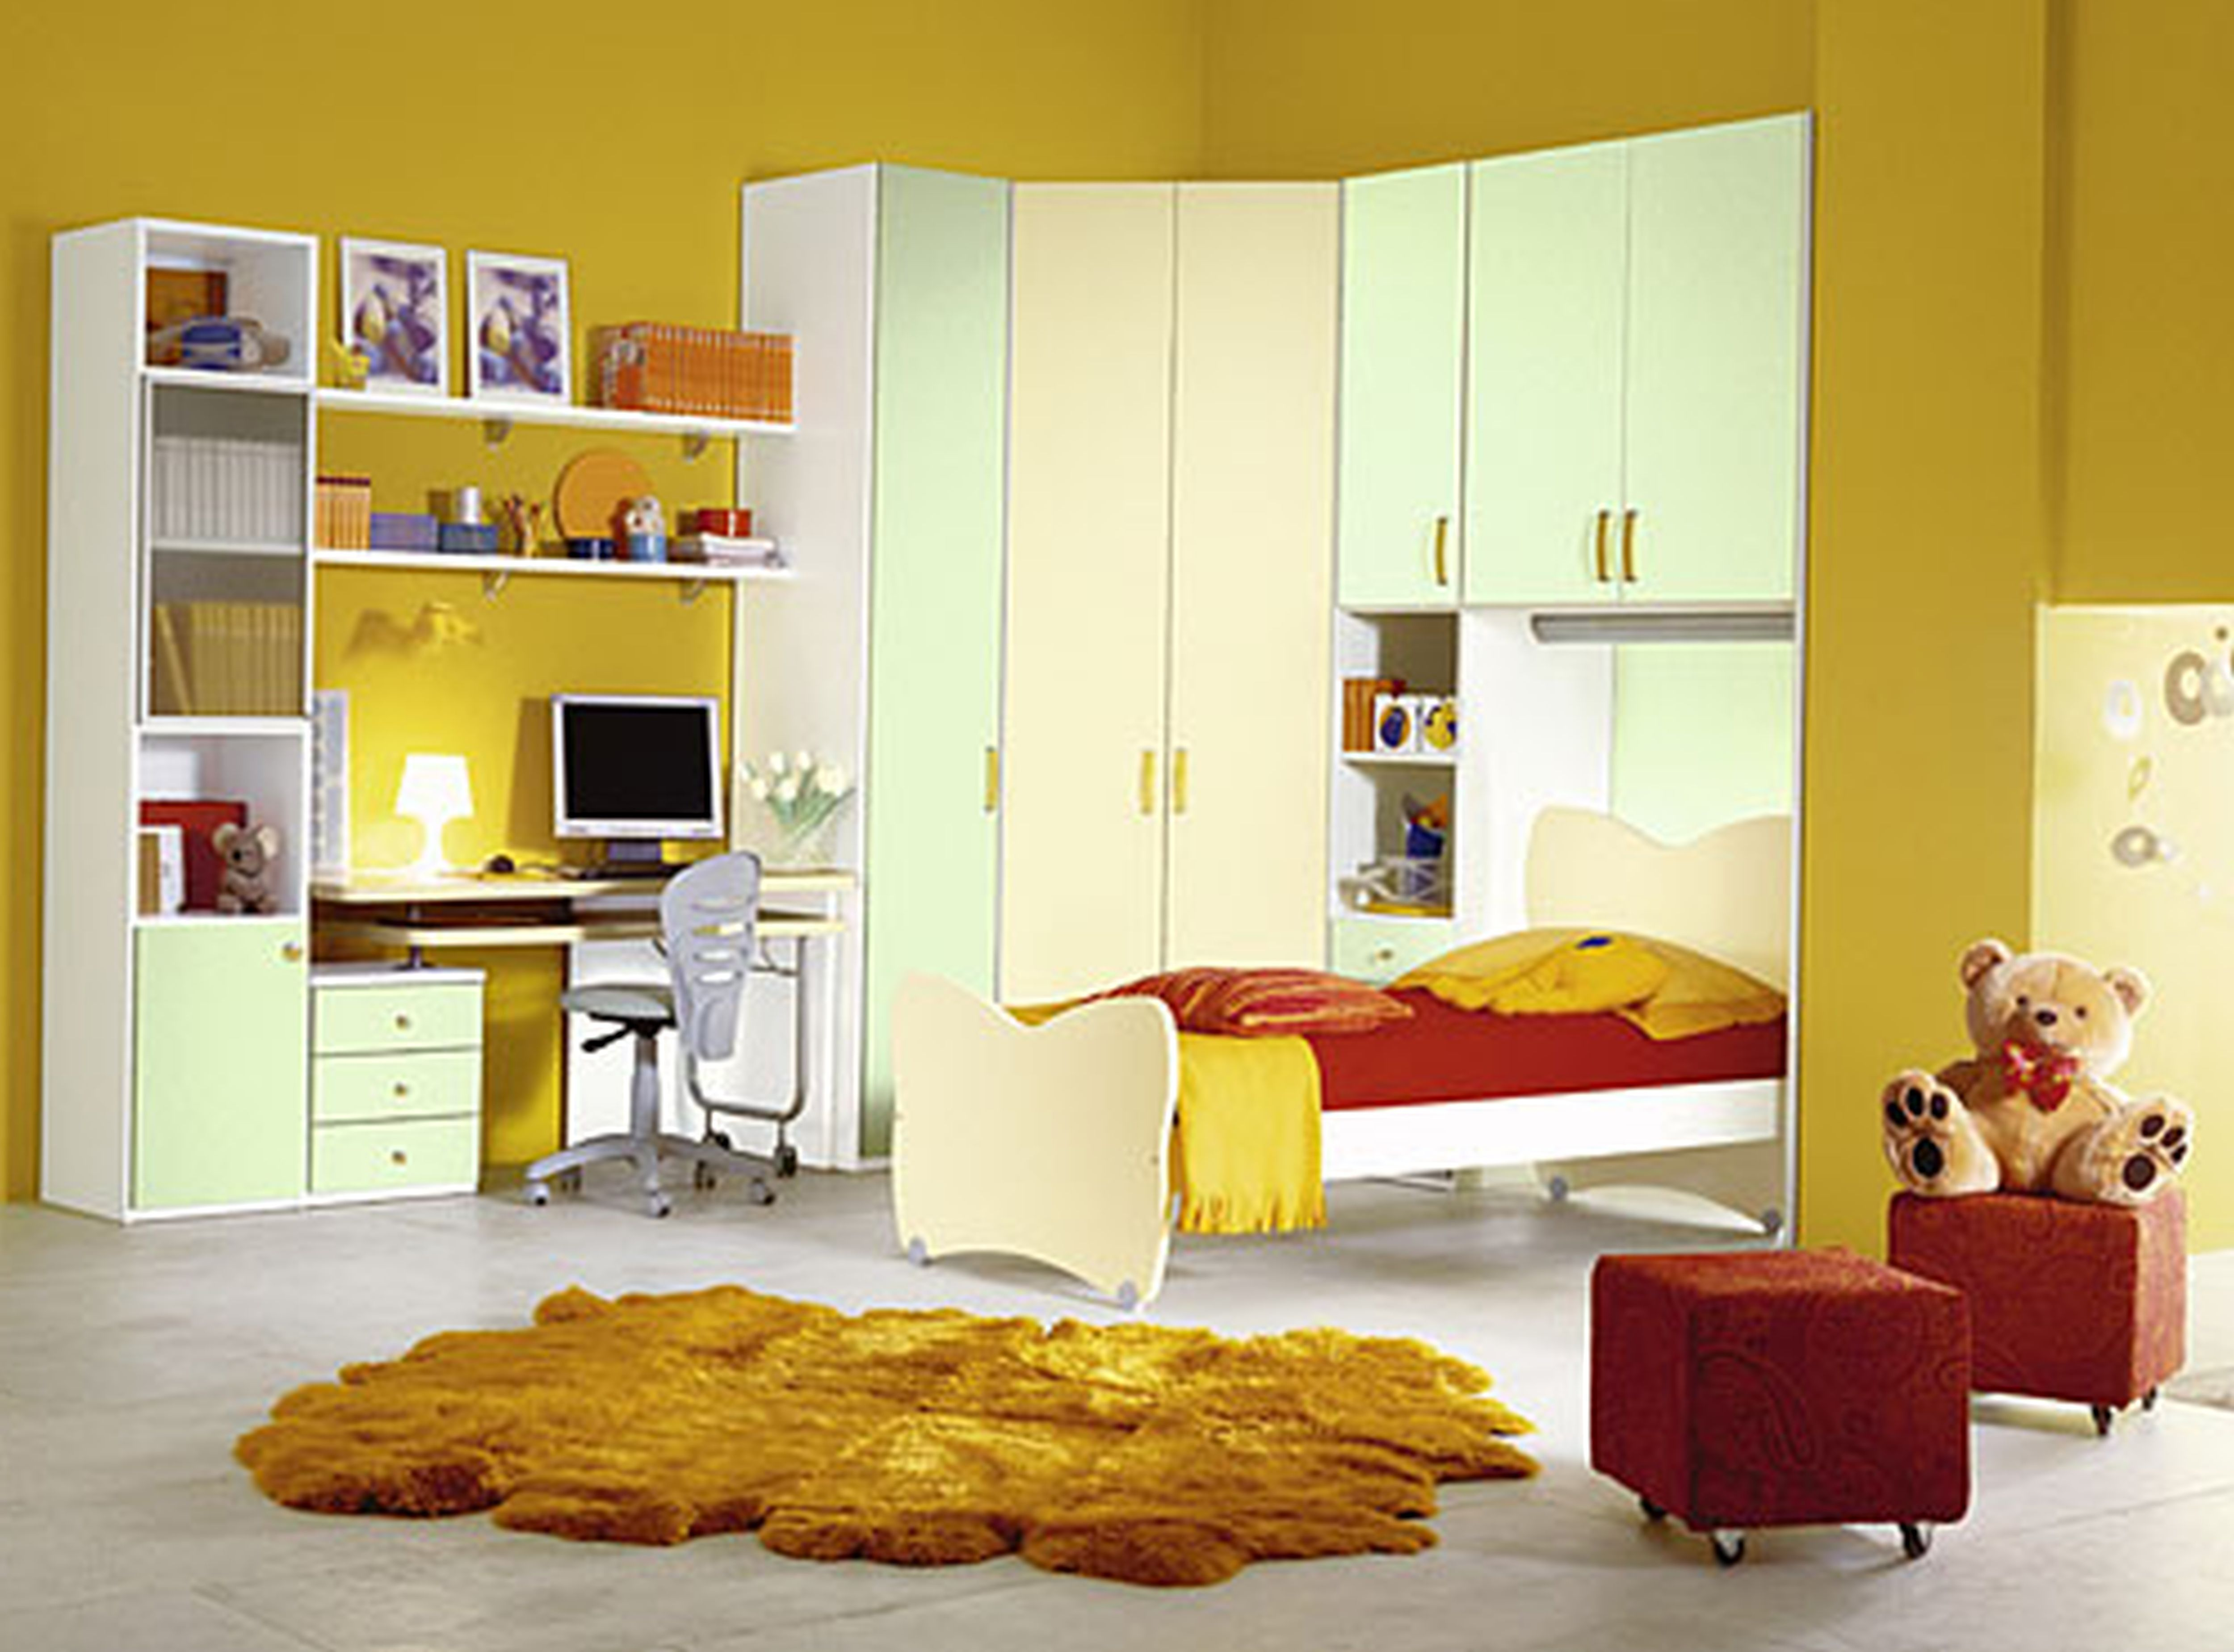 Charming Modern Yellow Wall Bedroom With White Color Interior Design ...